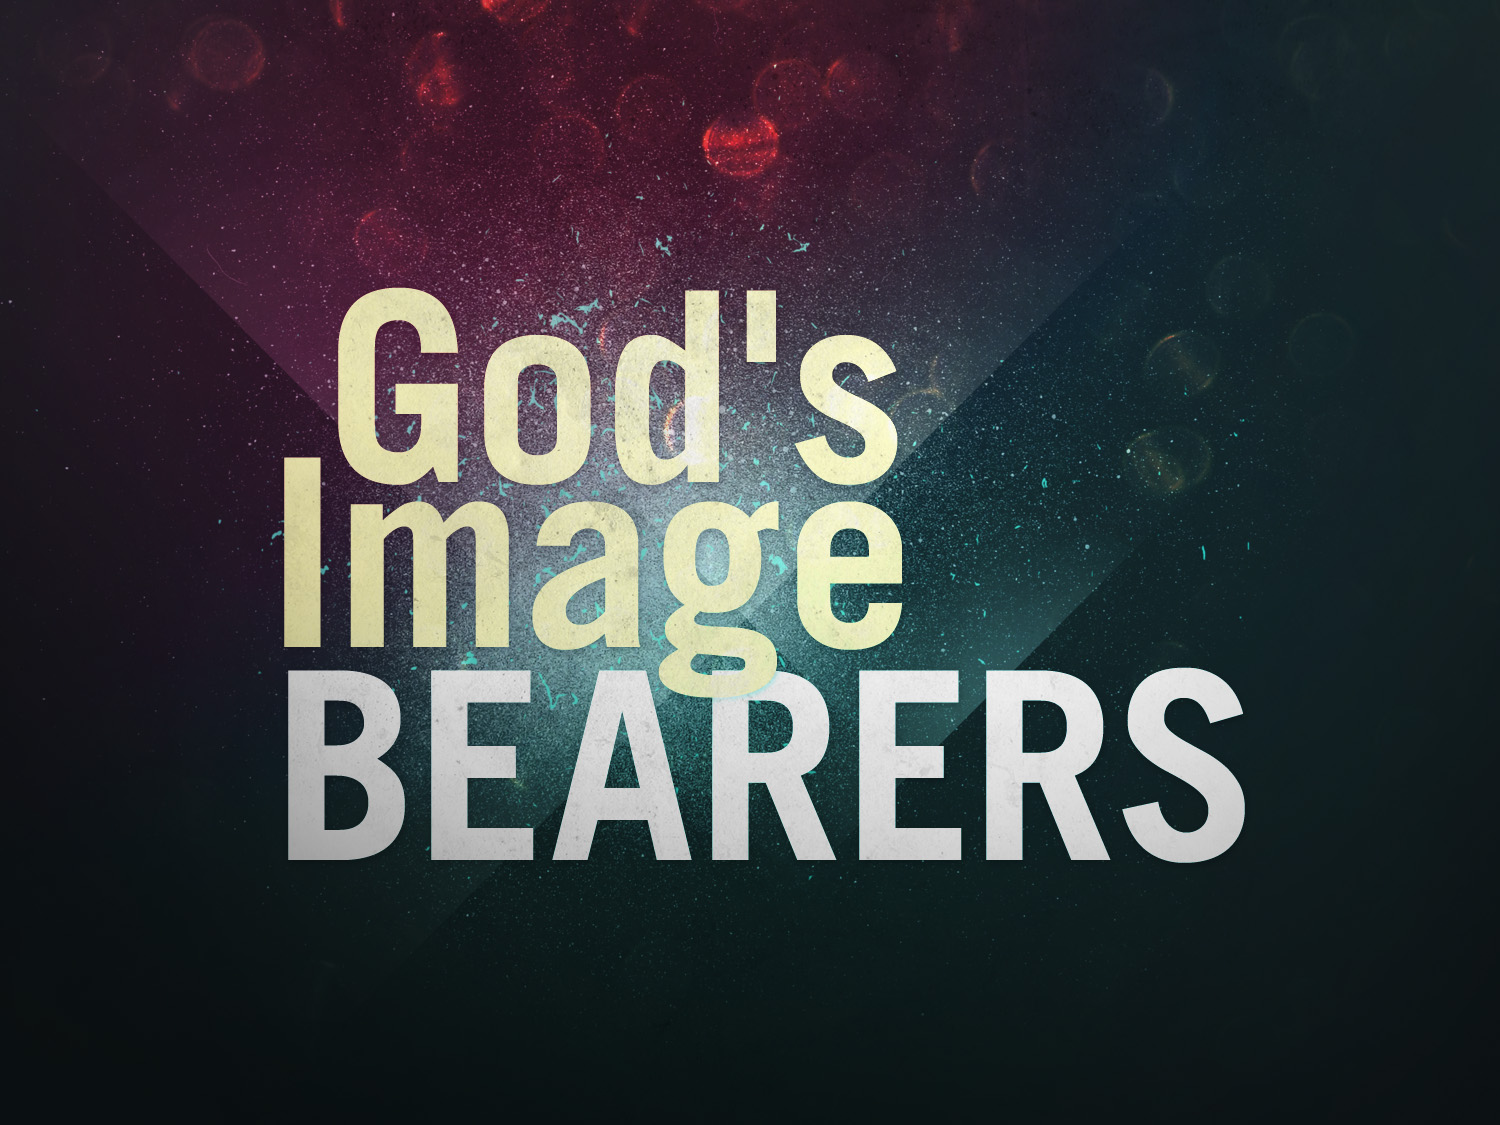 When god created us in his own image...?